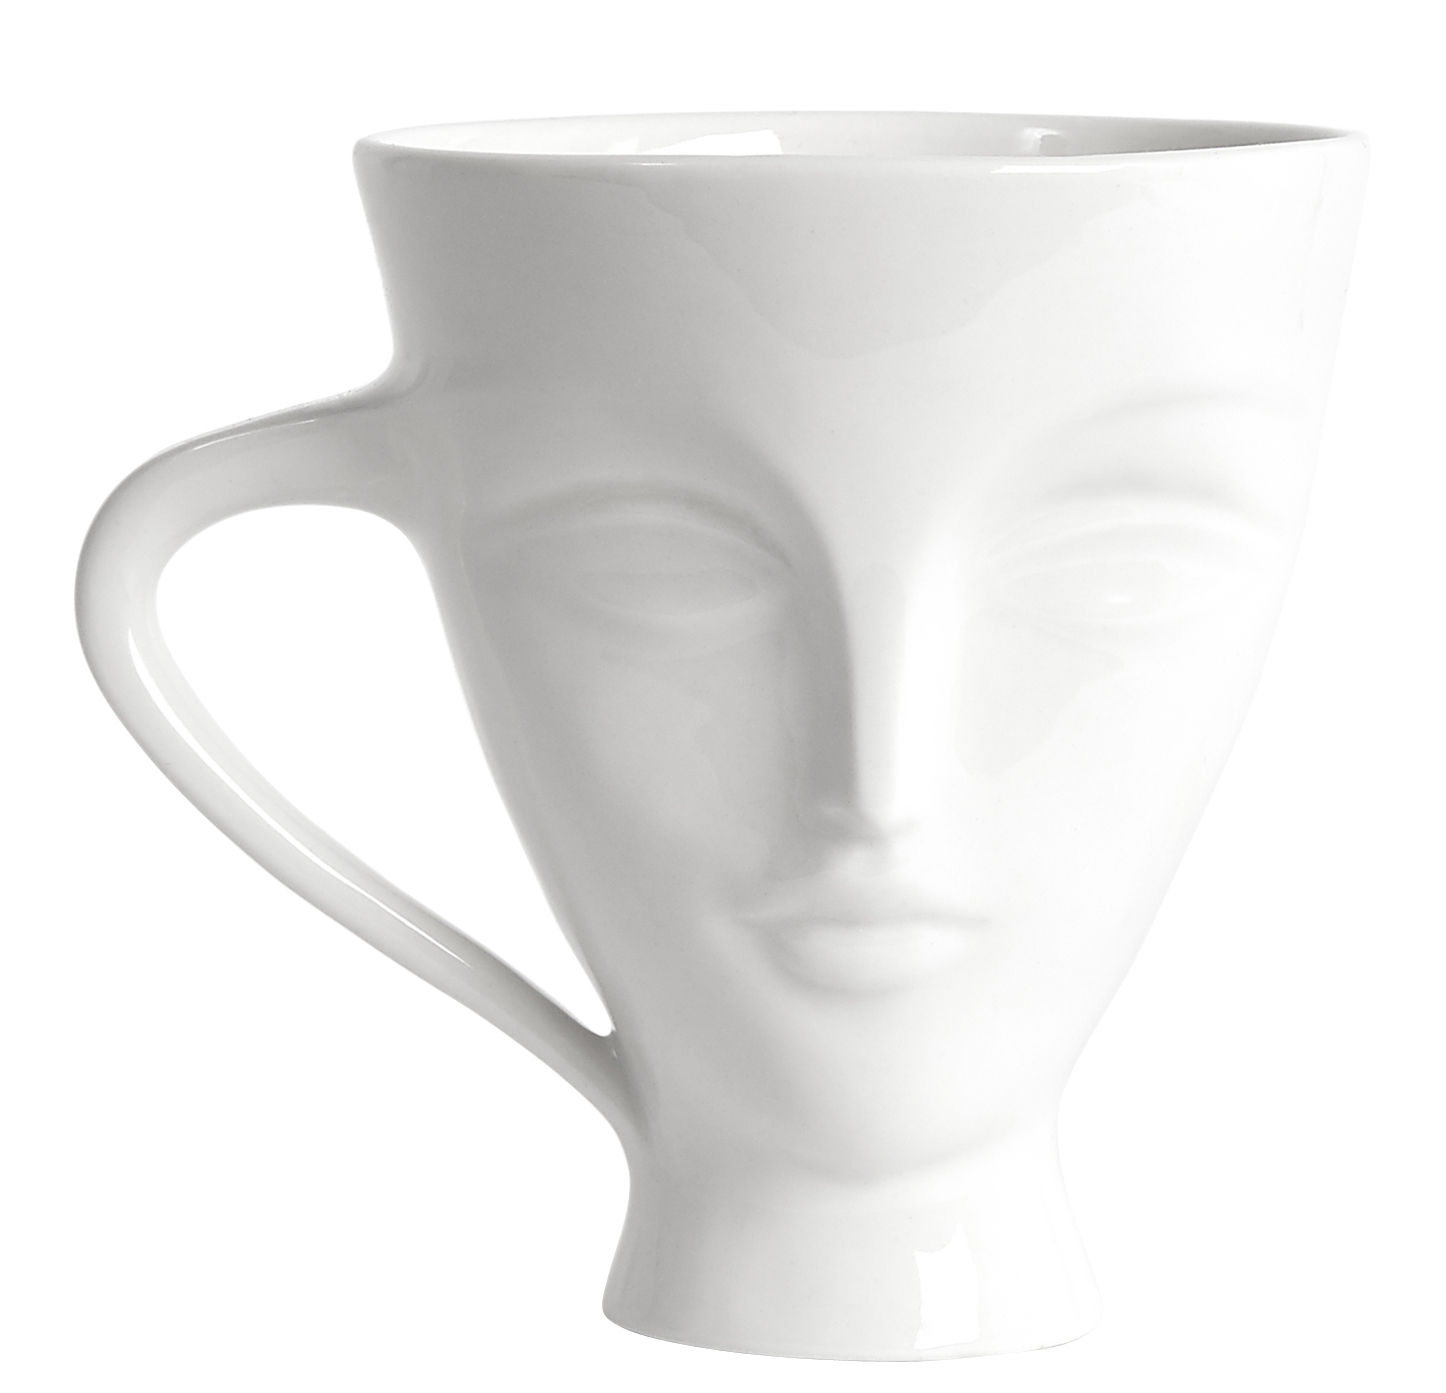 Tableware - Tea & Coffee Accessories - Giuliette Cup by Jonathan Adler - White - China